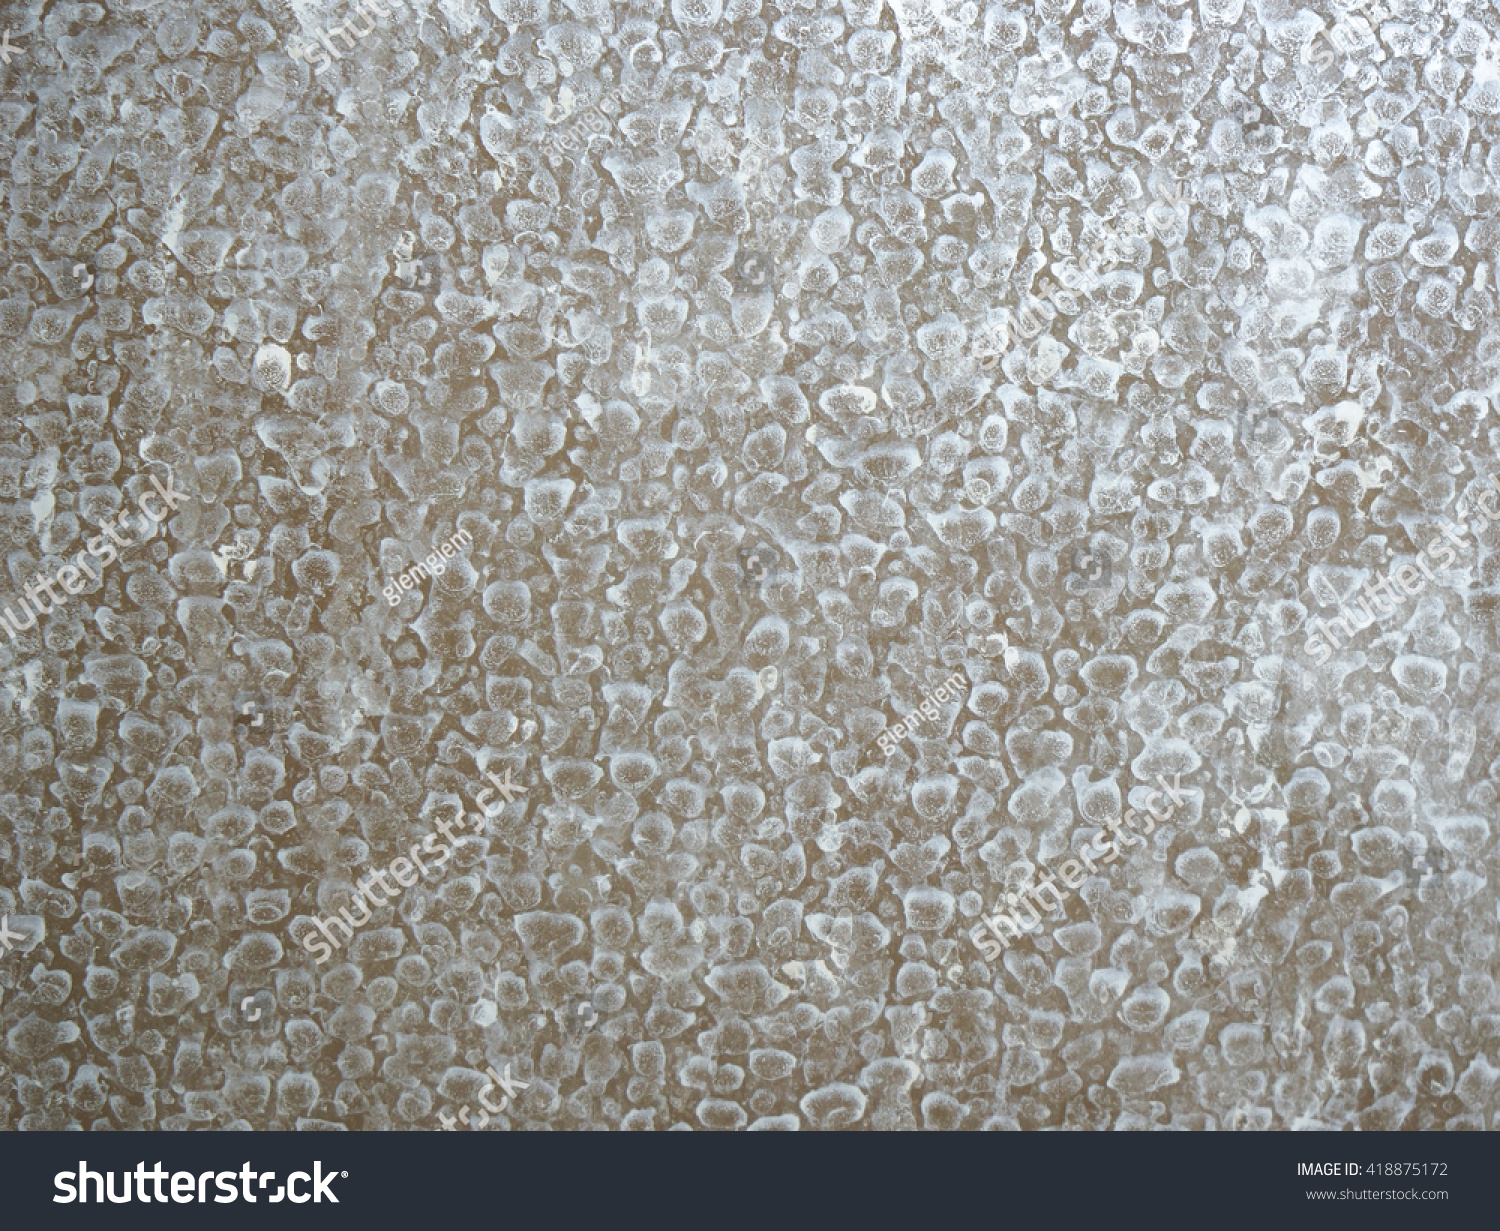 Water stains on walls in bathroom - Download Download Image Water Stains On Walls In Bathroom